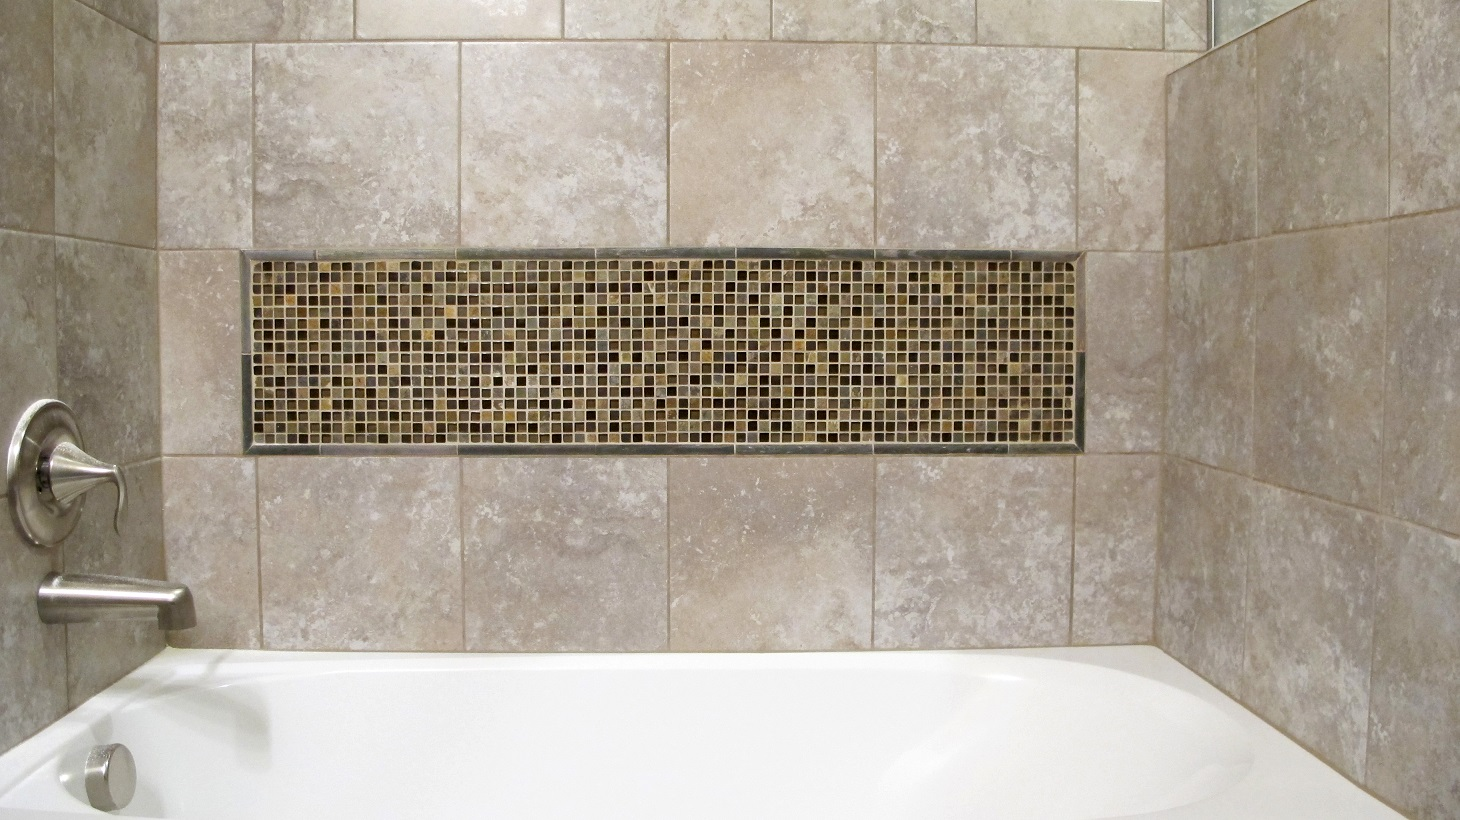 Guest bathroom slide in bath tub with tile surround and decorative mosaic insert slate glass mix